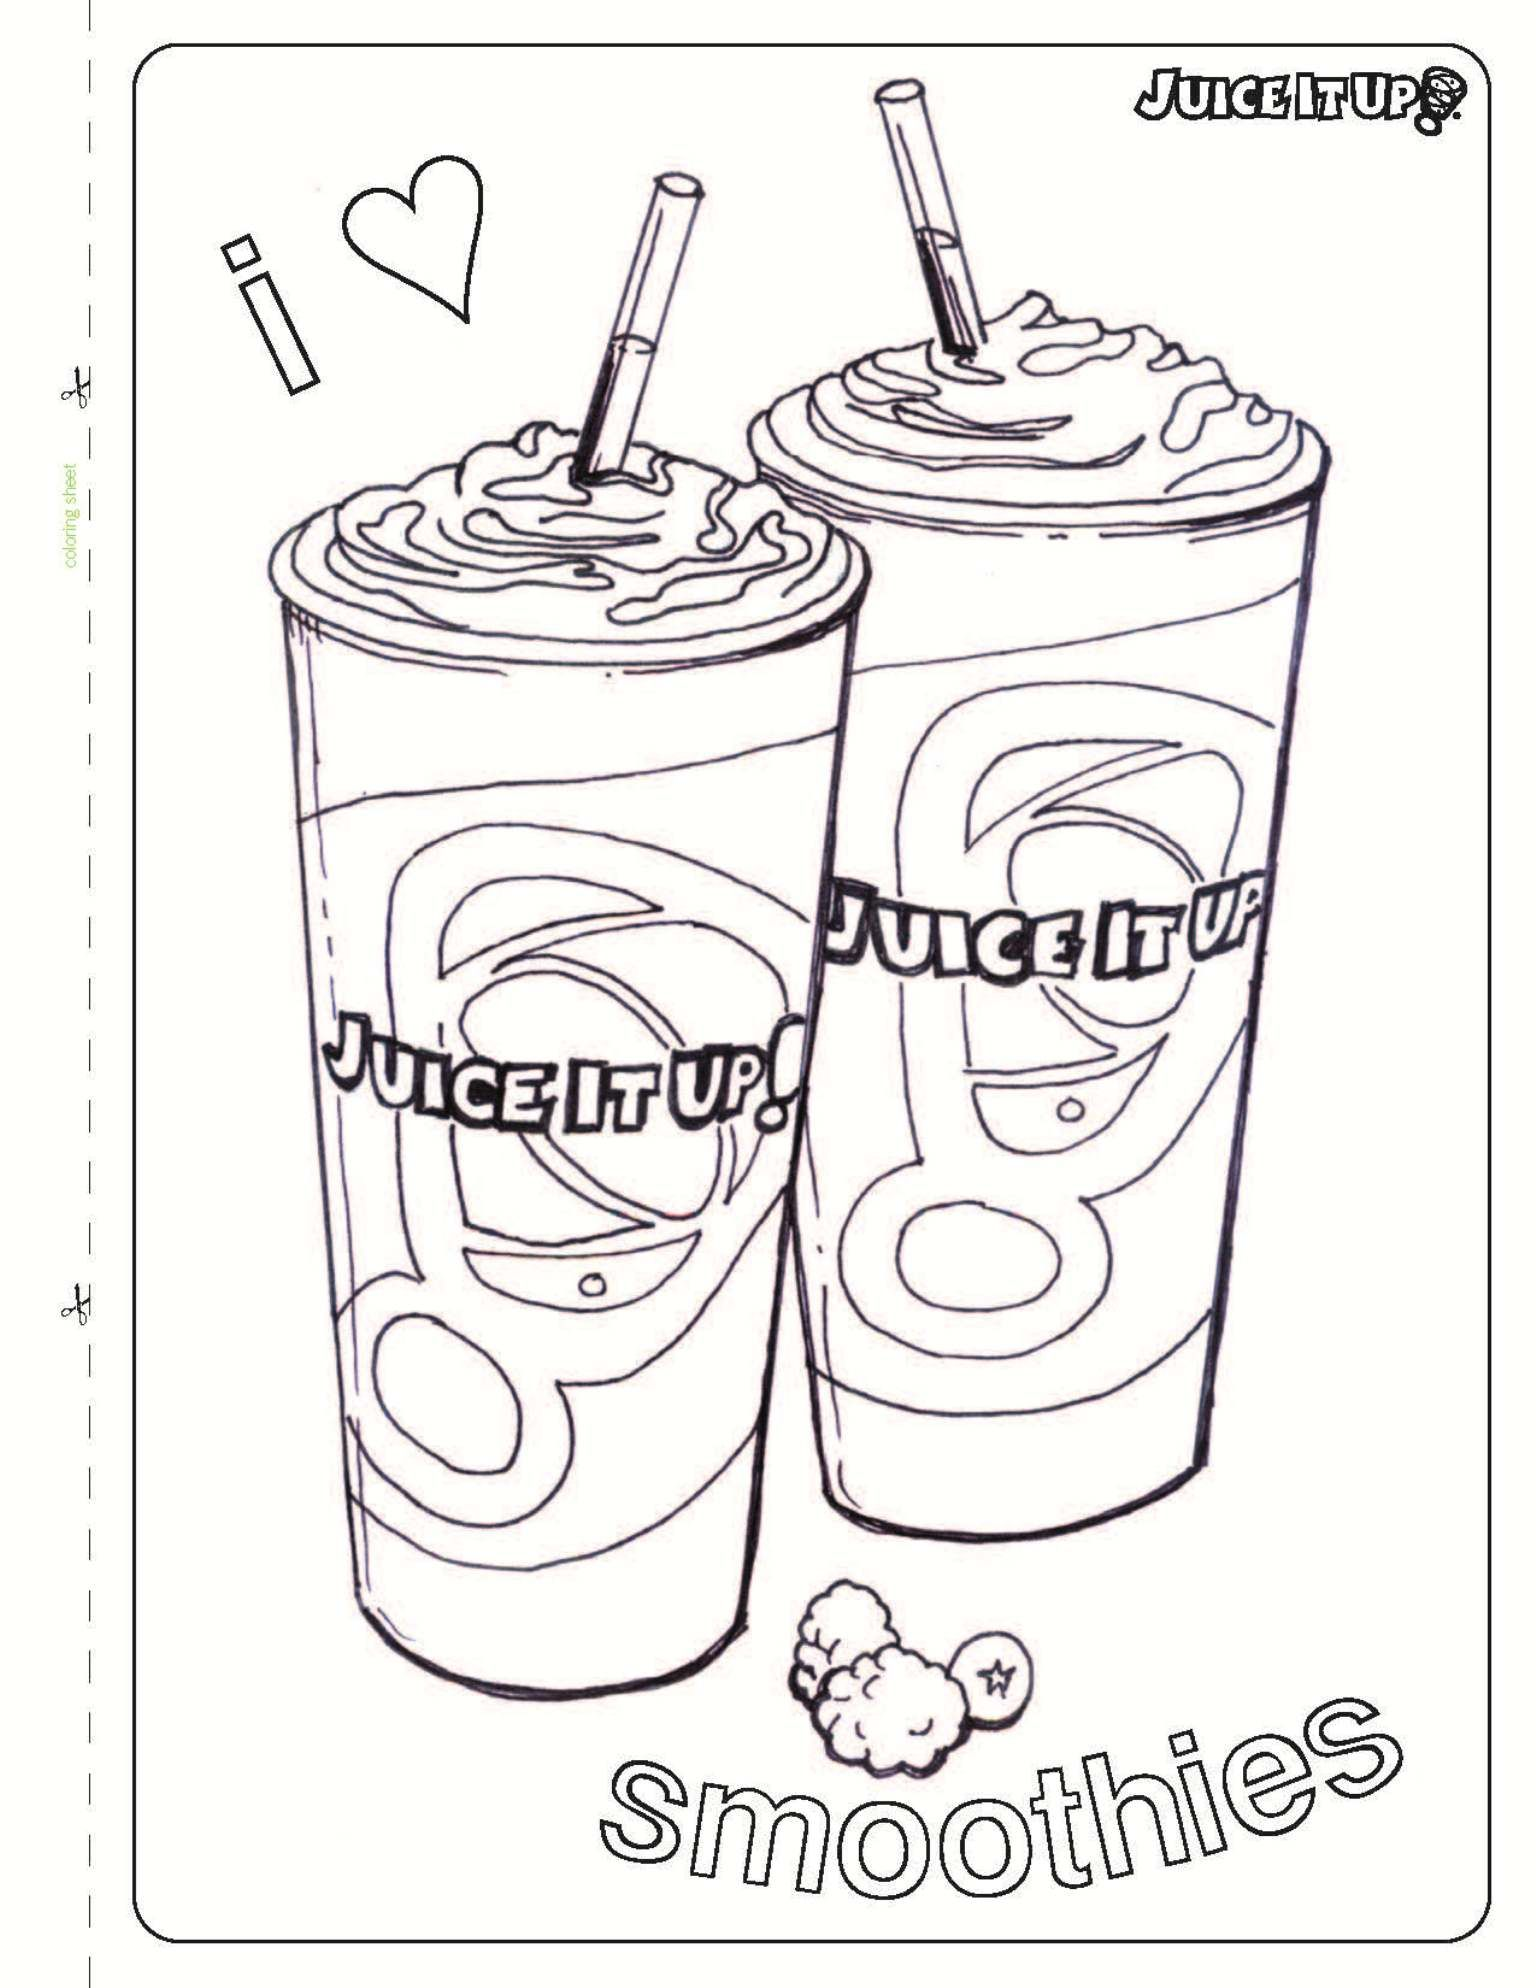 Juice It Up! Kids Coloring Sheets - Print Out & Color #fun #smoothie ...